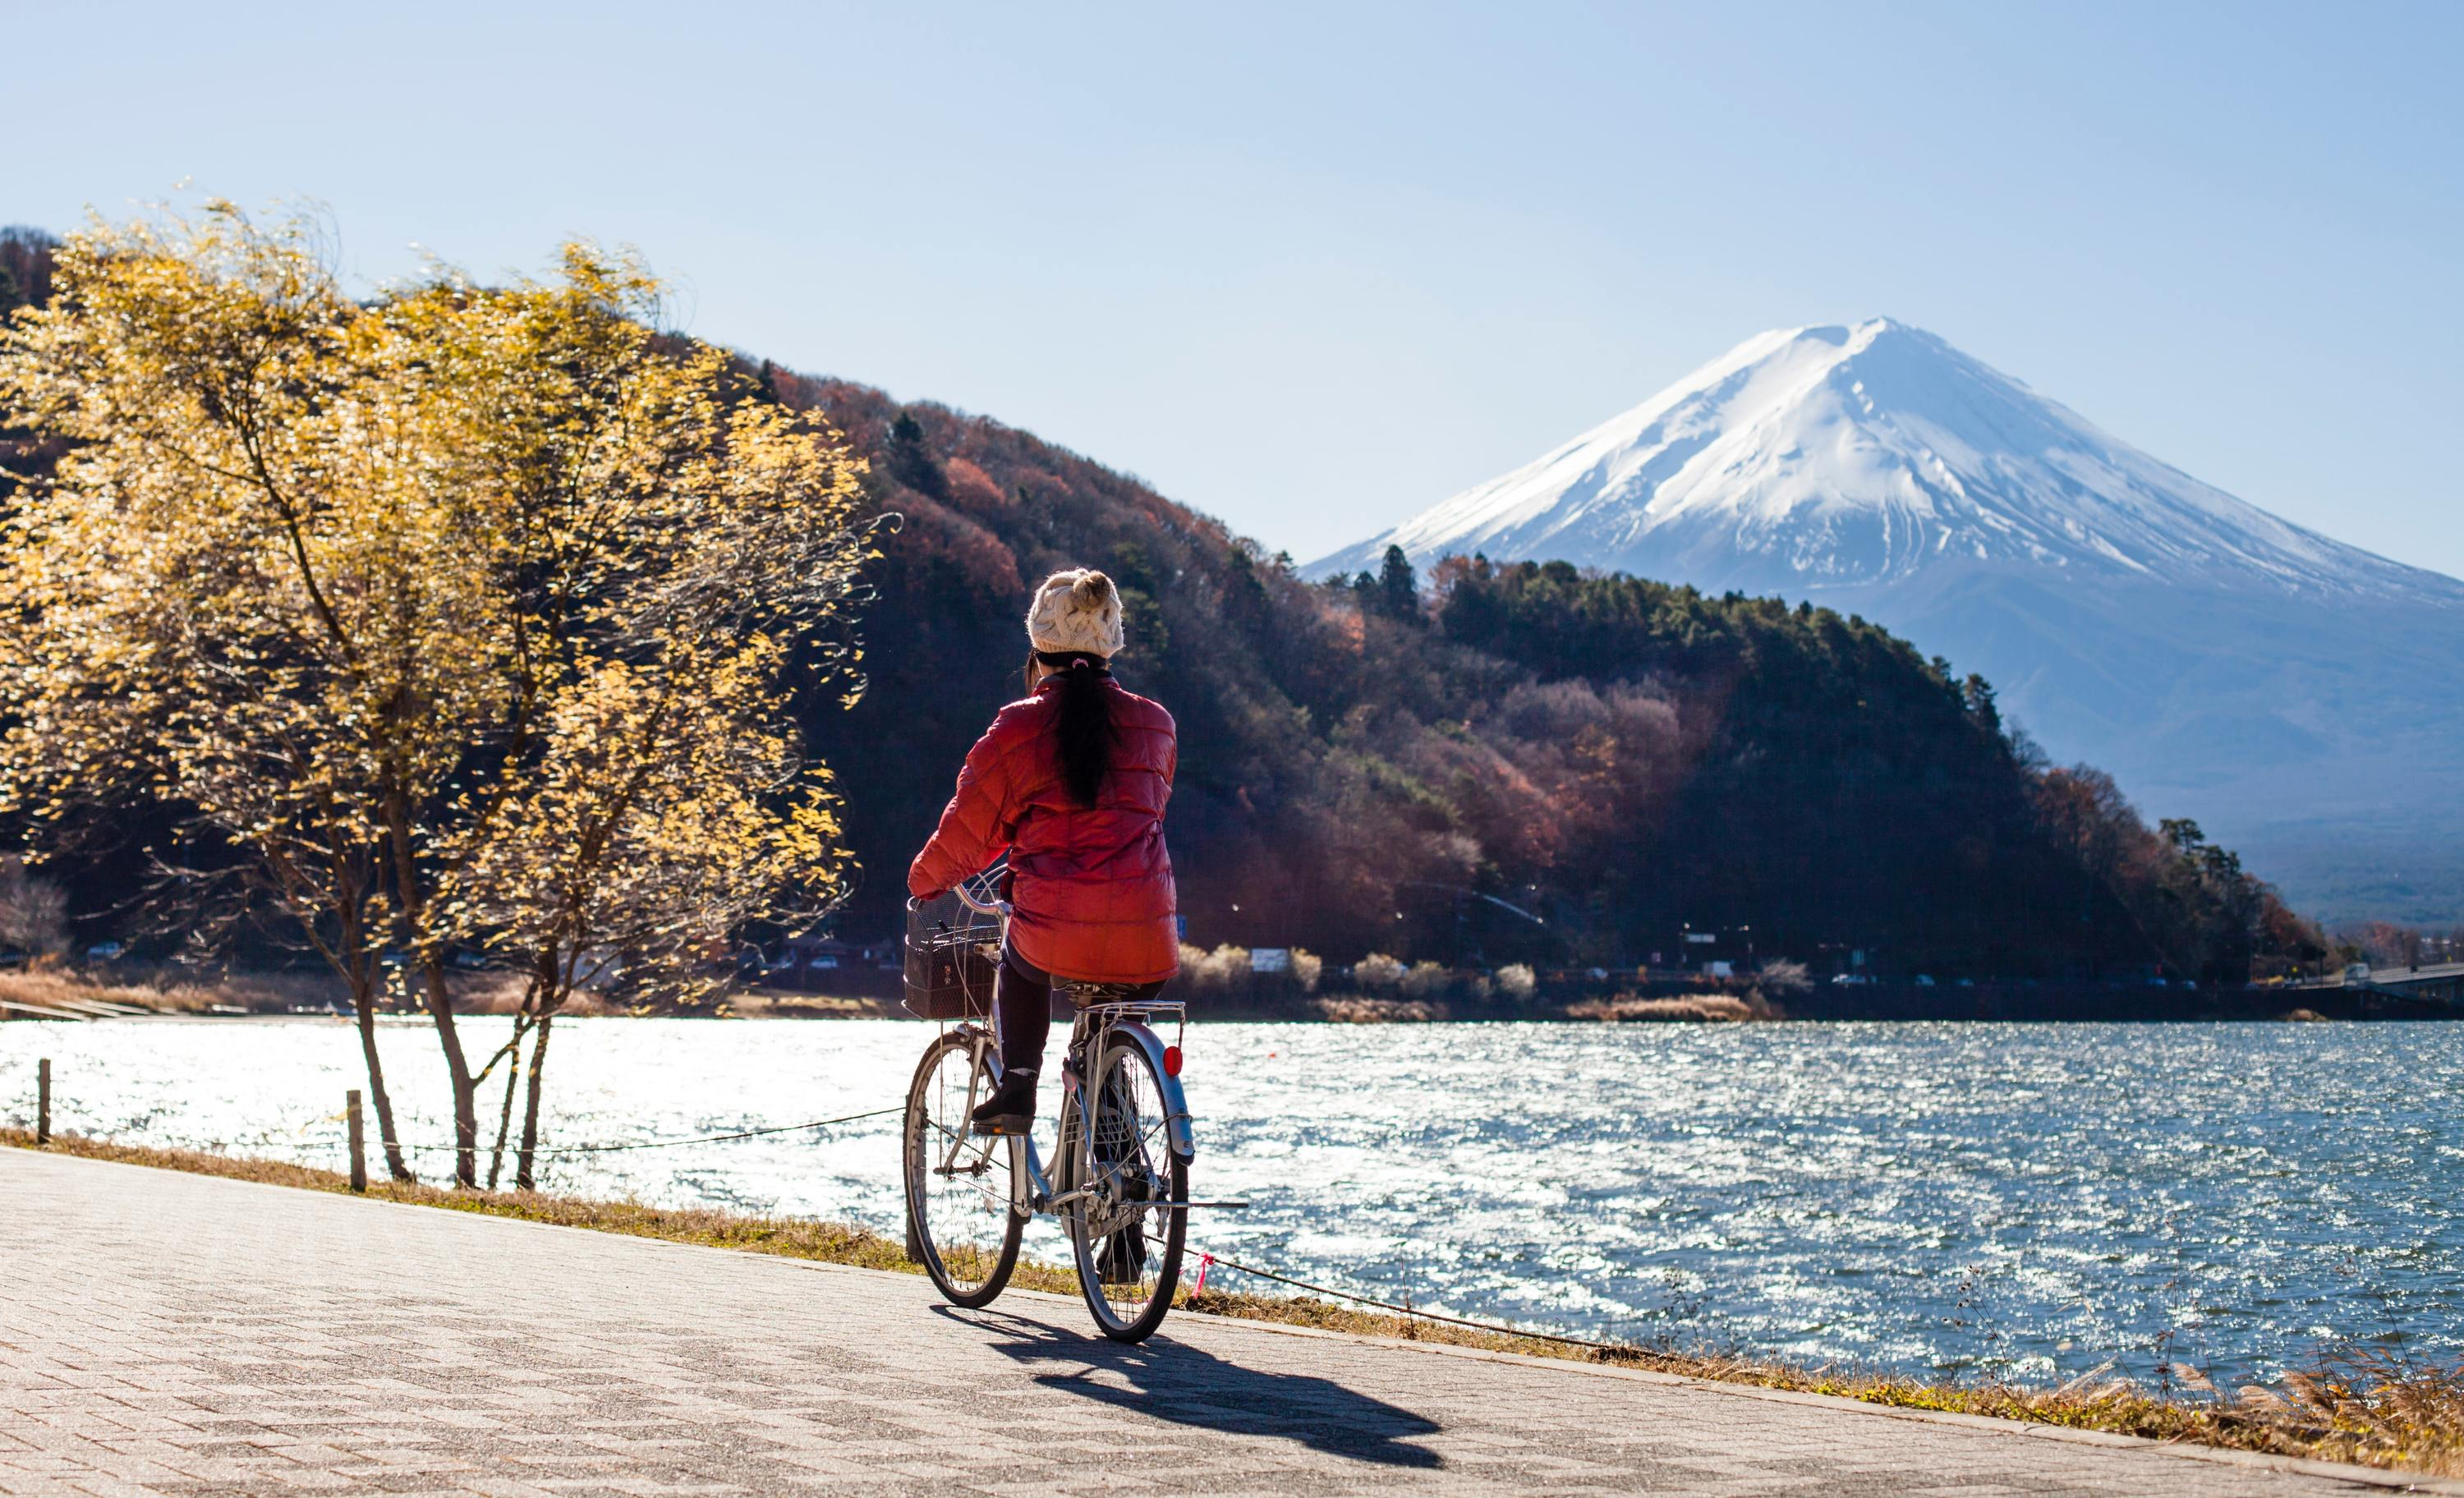 Mt Fuji, sightseeing on bicycles